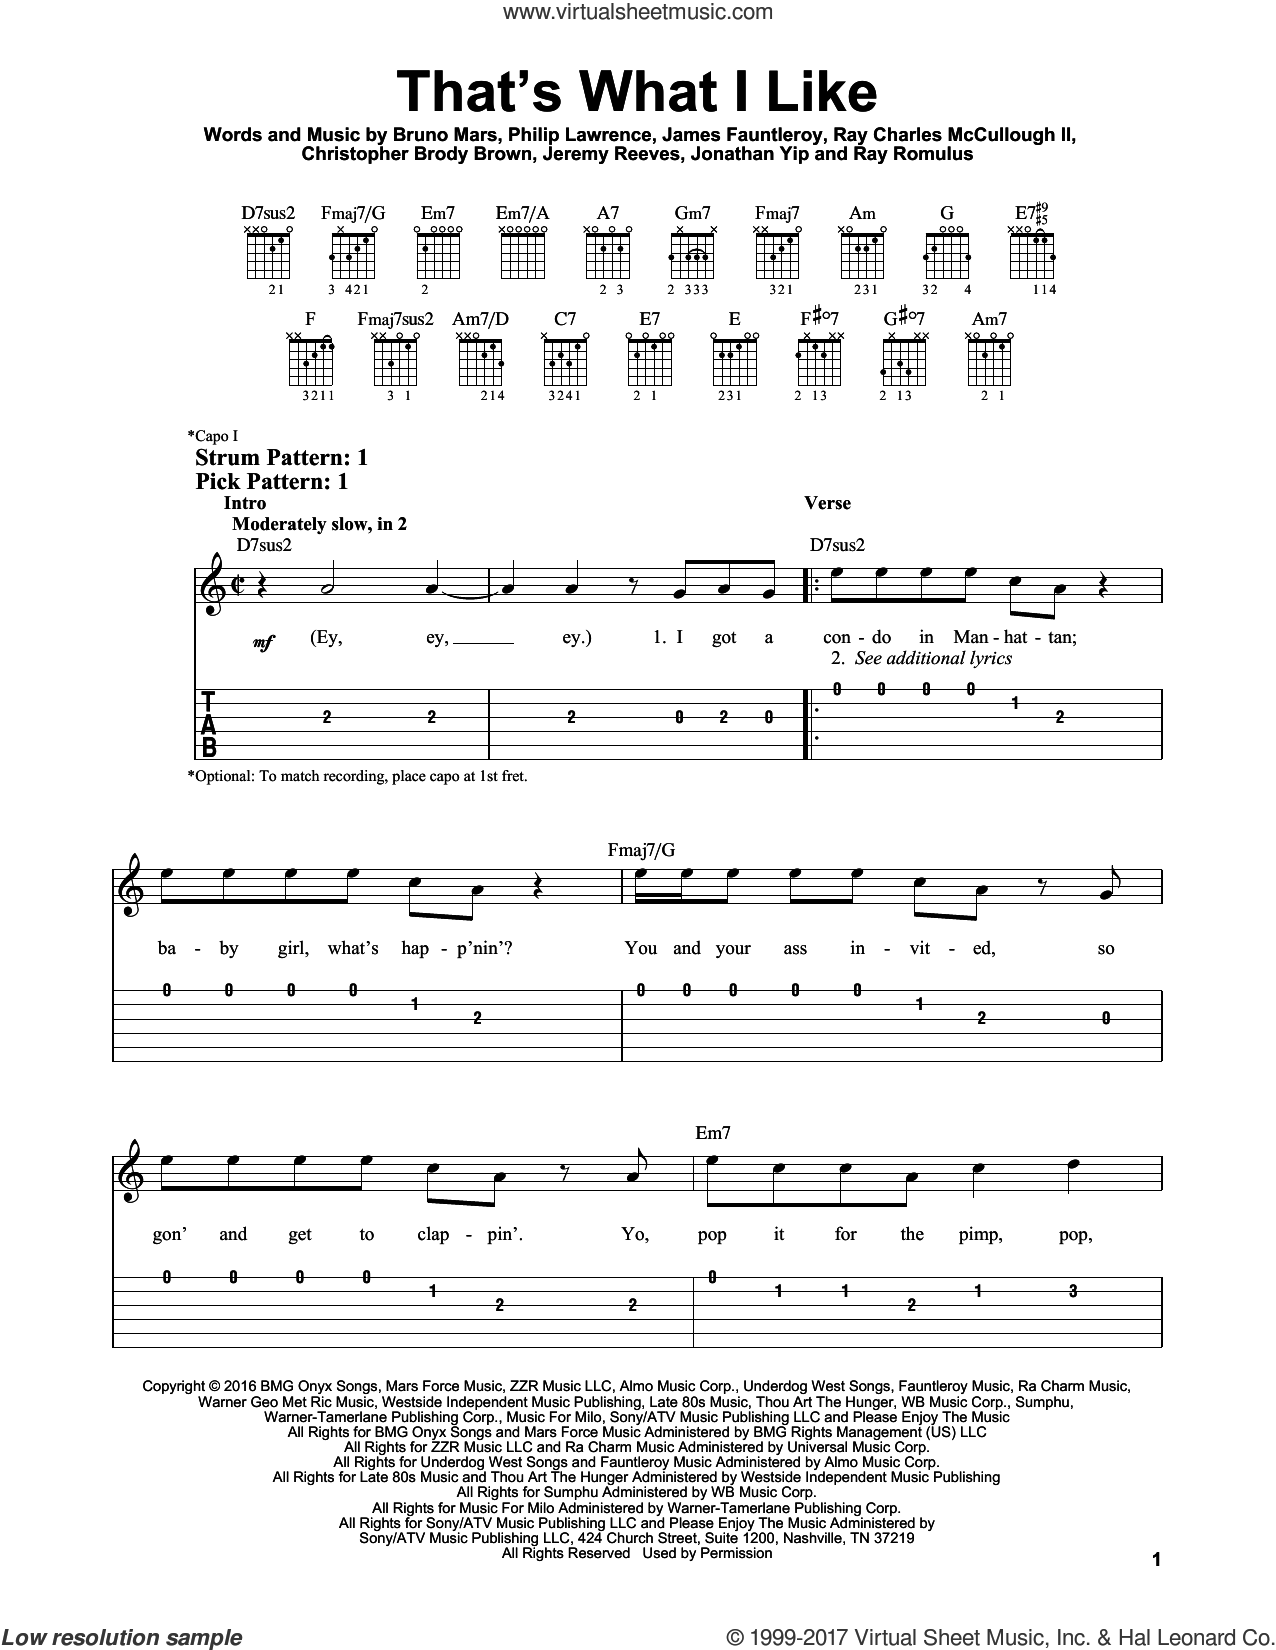 That's What I Like sheet music for guitar solo (easy tablature) by Bruno Mars, Christopher Brody Brown, James Fauntleroy, Jeremy Reeves, Jonathan Yip, Philip Lawrence, Ray Charles McCullough II and Ray Romulus, easy guitar (easy tablature)